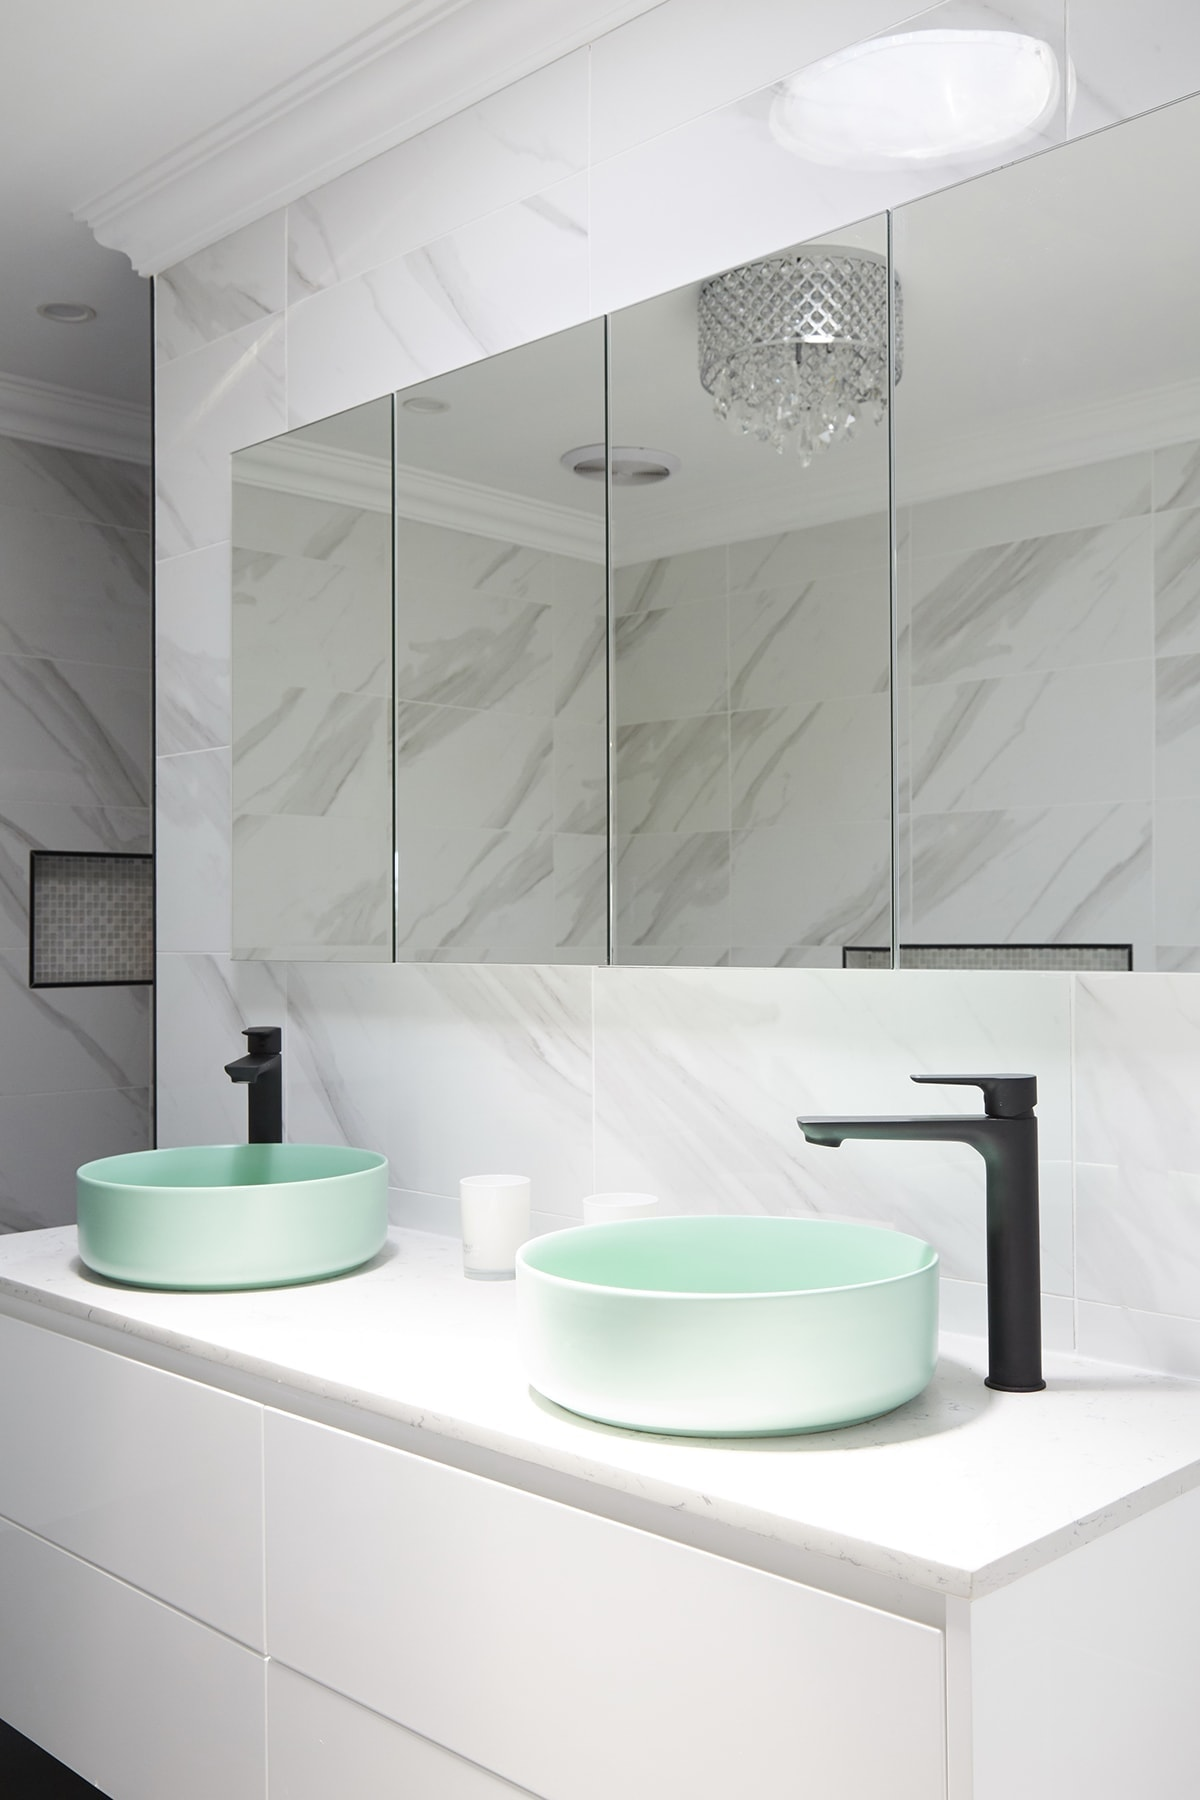 house rules 2018 kim and michelle marble bathroom with mint basin